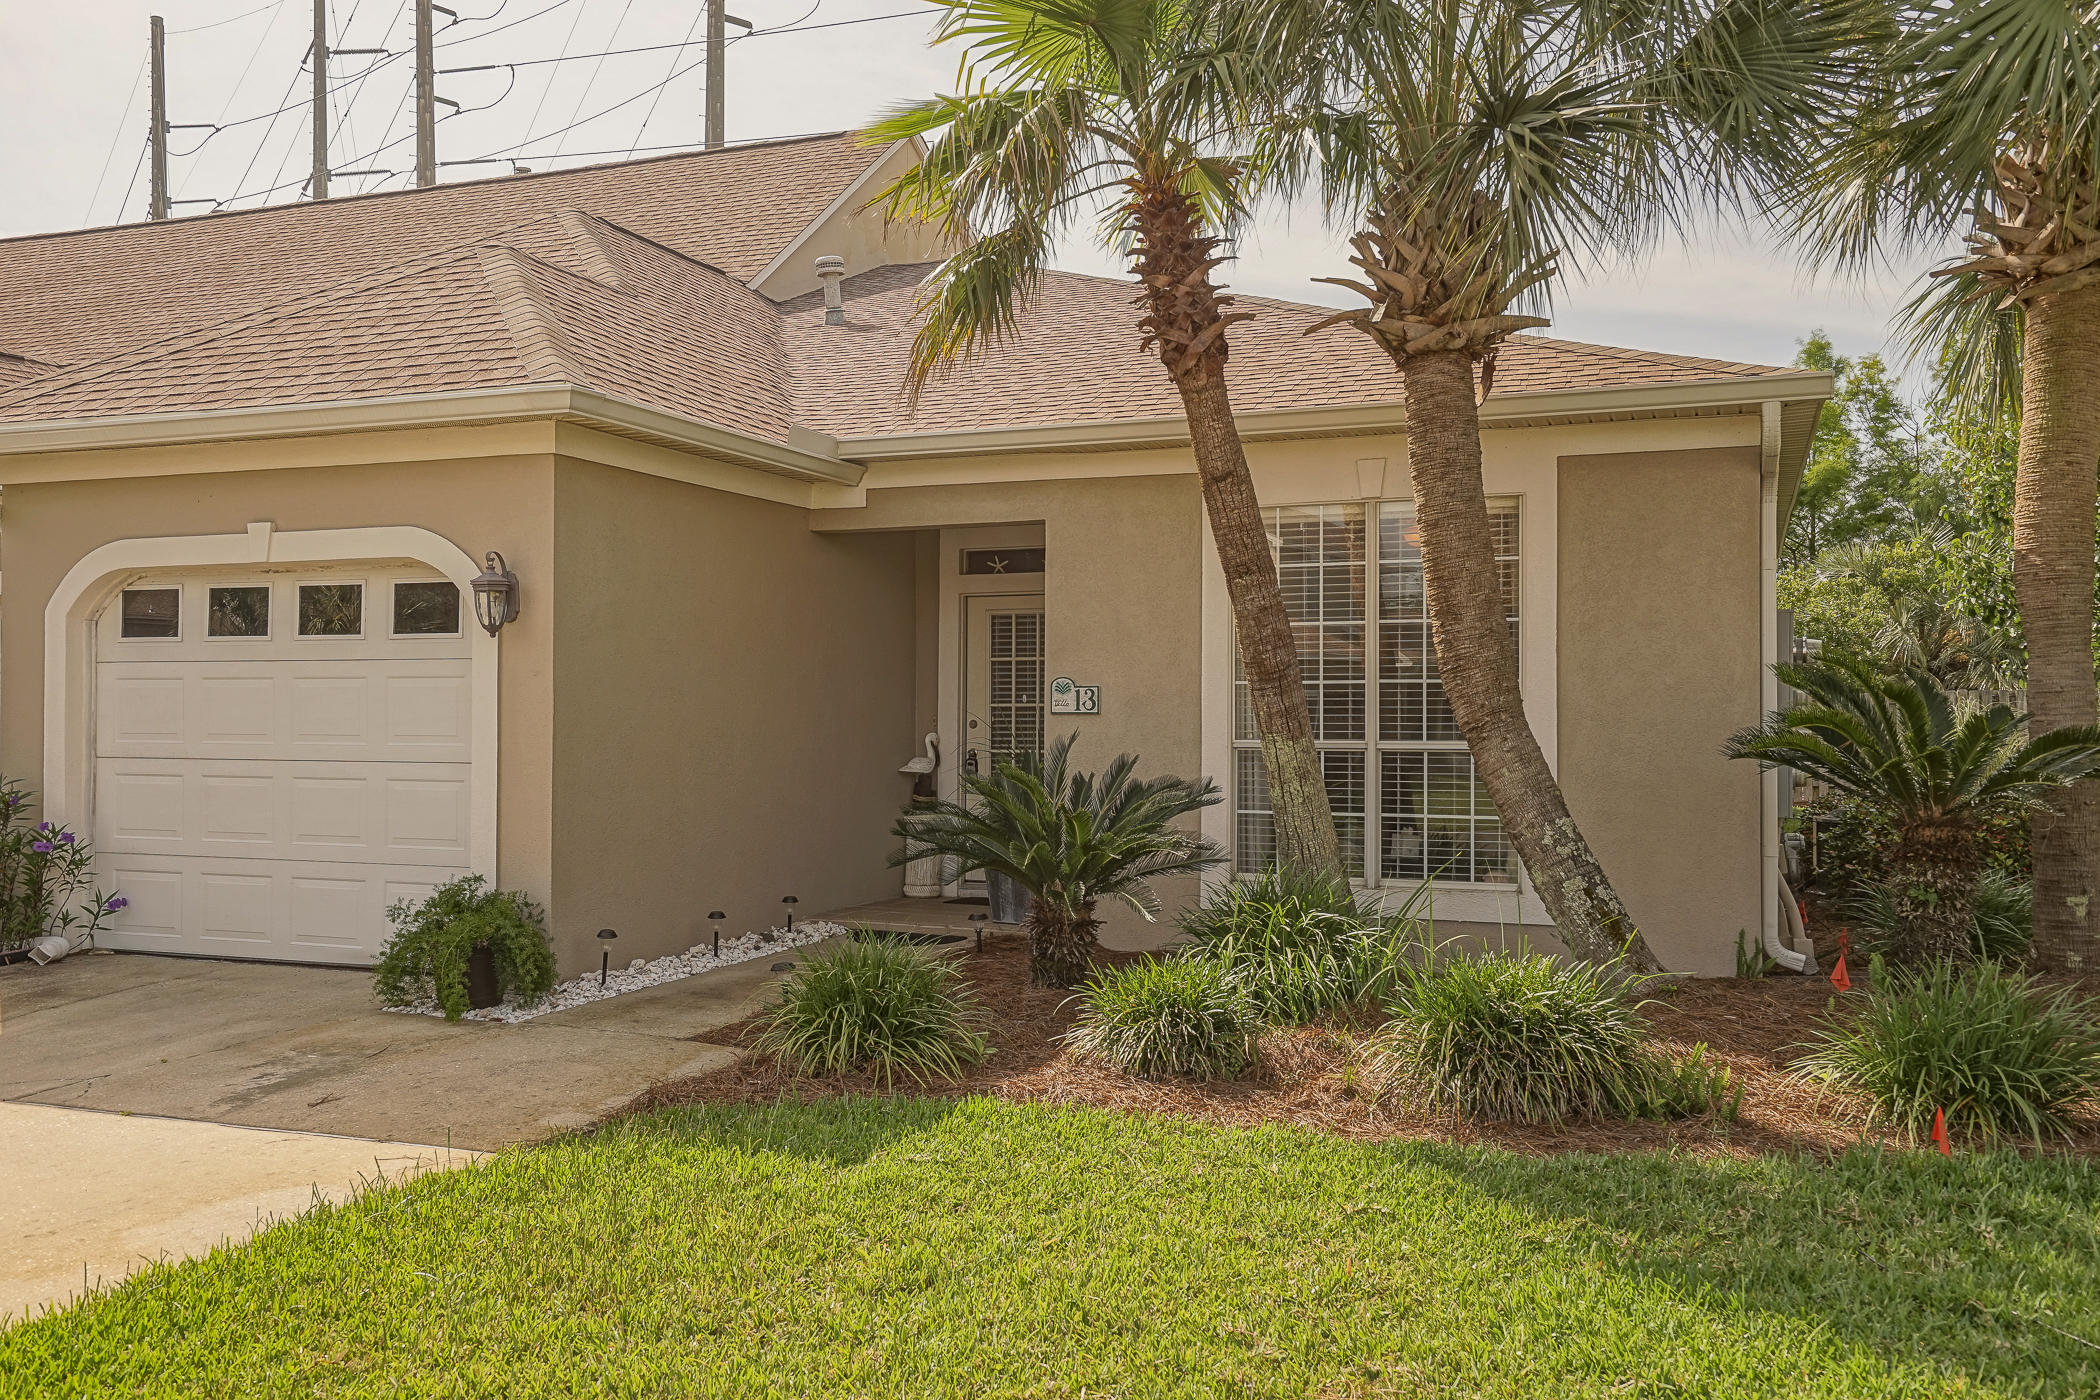 This is a single floor and end unit town home with 3 bedrooms and 2 bathrooms just minutes away from the white sandy beaches of Florida's Emerald Coast, Miramar Beach's top restaurants, and San Destin's premiere shopping centers! The home has been kept in pristine condition with a fresh coat of exterior paint in 2018 and a roof that is only 5 years of age. The home maintains granite counter tops throughout, stainless steel appliances, a gas fireplace, and a brand new glassed enclosed Florida Room. The HOA includes yard maintenance, termite and pest control, and ground keeping of common areas. The HOA also includes access to two pools, tennis courts, a lovely park and pavilion, and deeded access to a community dock with a direct view of the Bay.